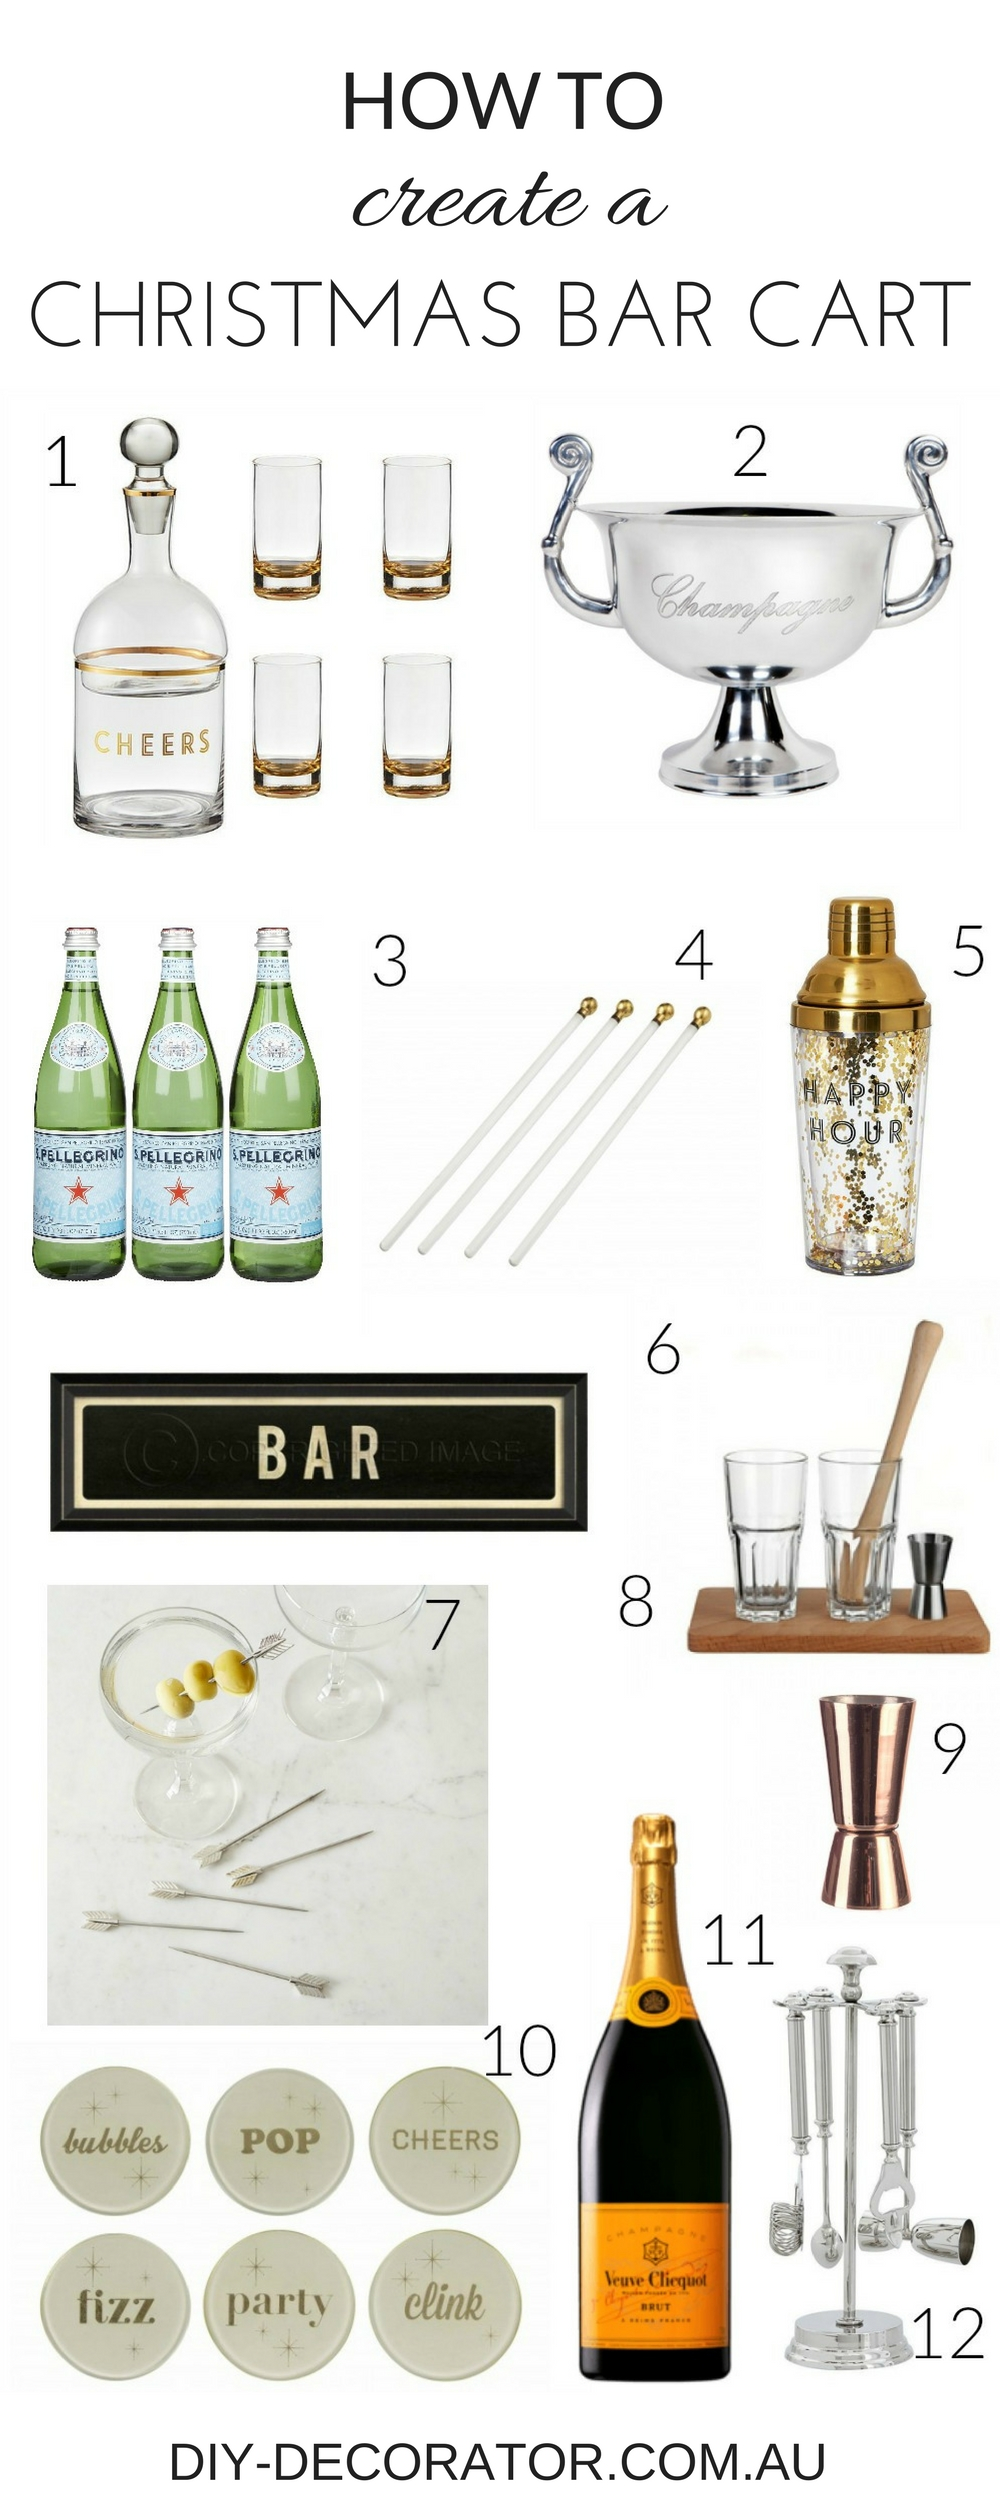 Create a Christmas Bar Cart